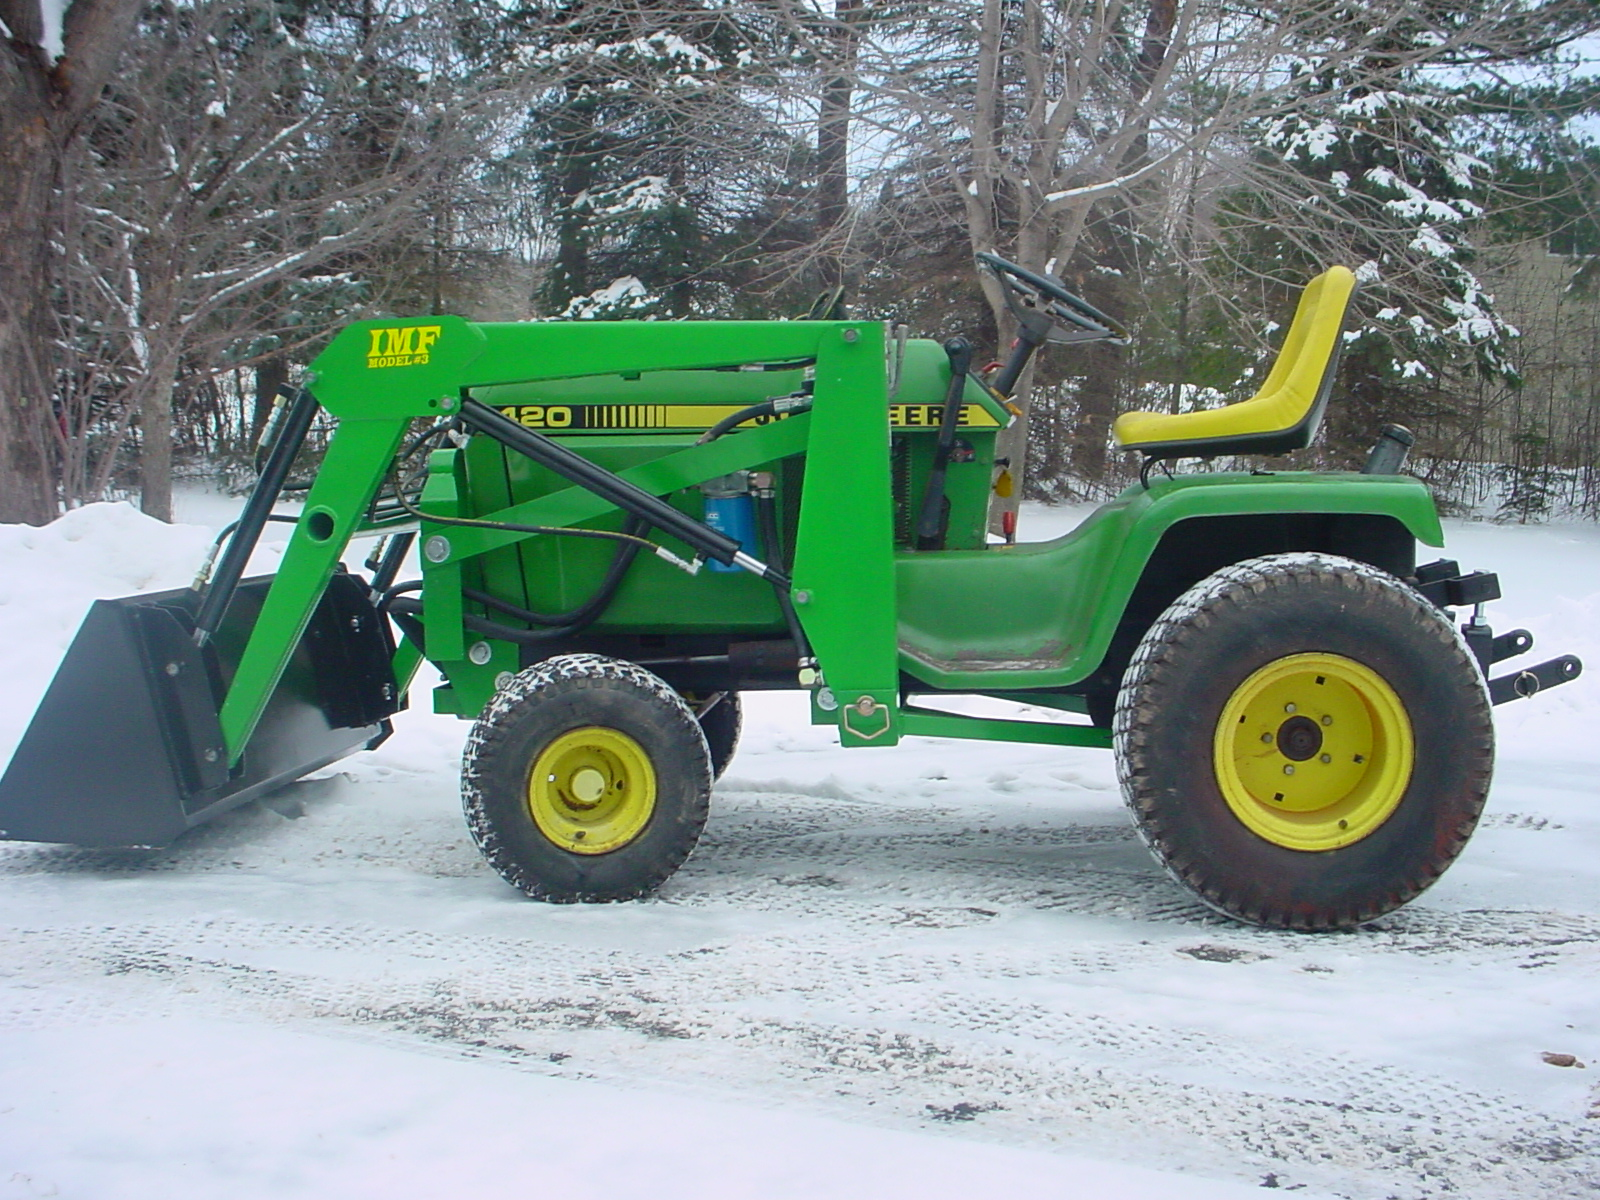 John Deere 420 Amazing Photo On Openiso Org Collection Of Cars John Deere 420 Download